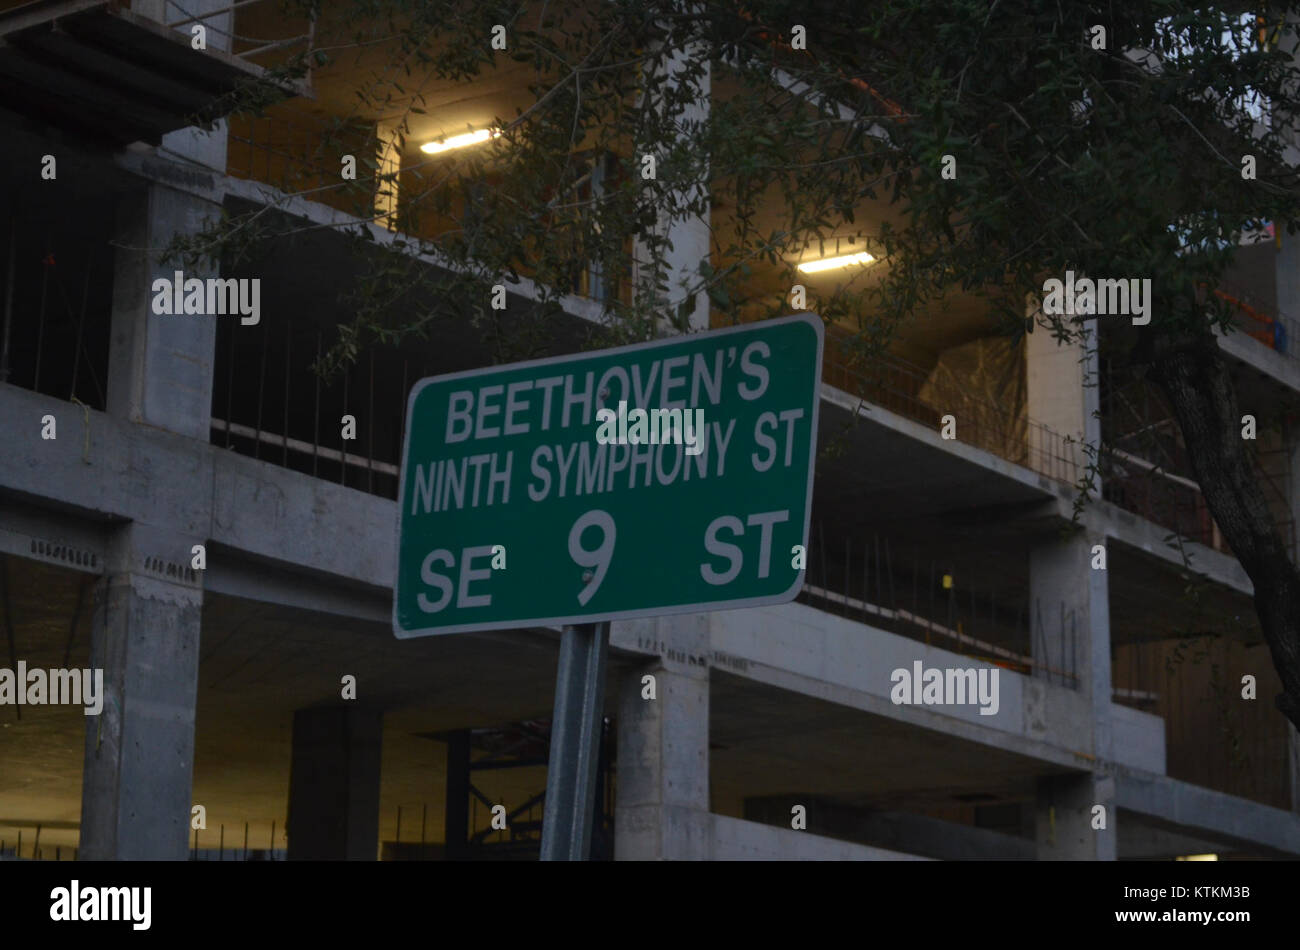 Beethoven's 9th Symphony Way sign - Stock Image